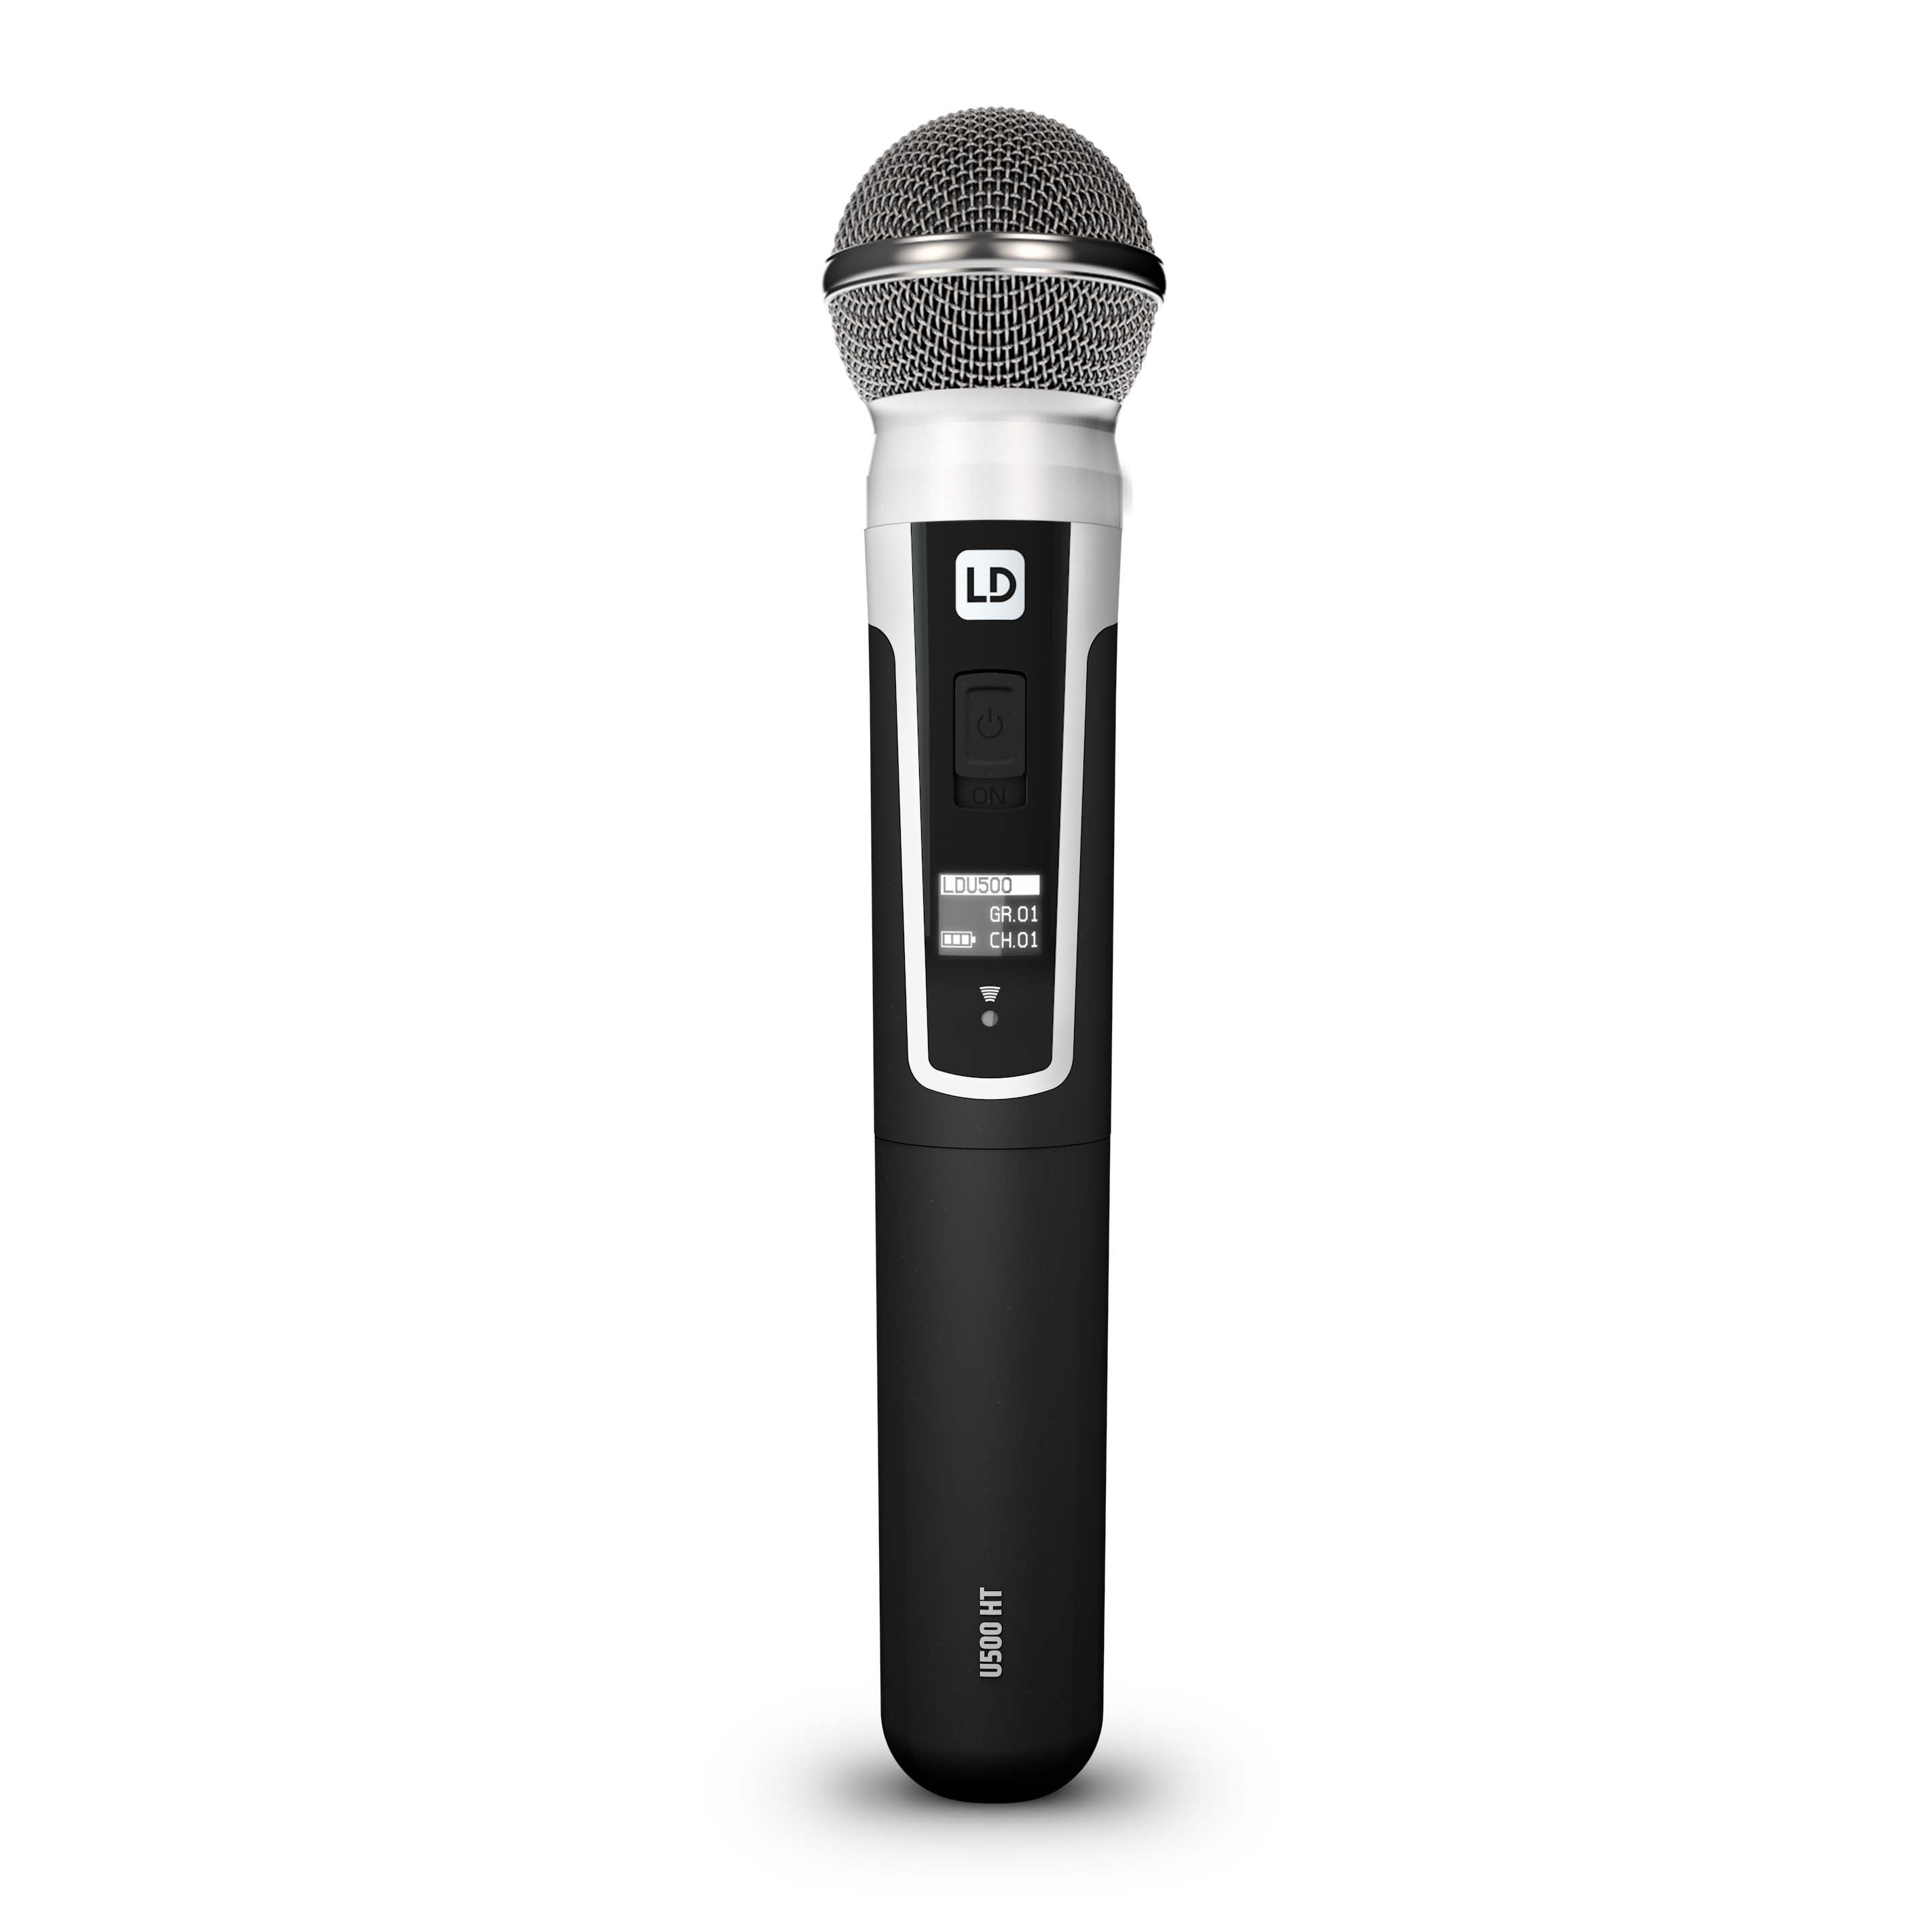 U505 HHD 2 Wireless Microphone System with 2 x Dynamic Handheld Microphone